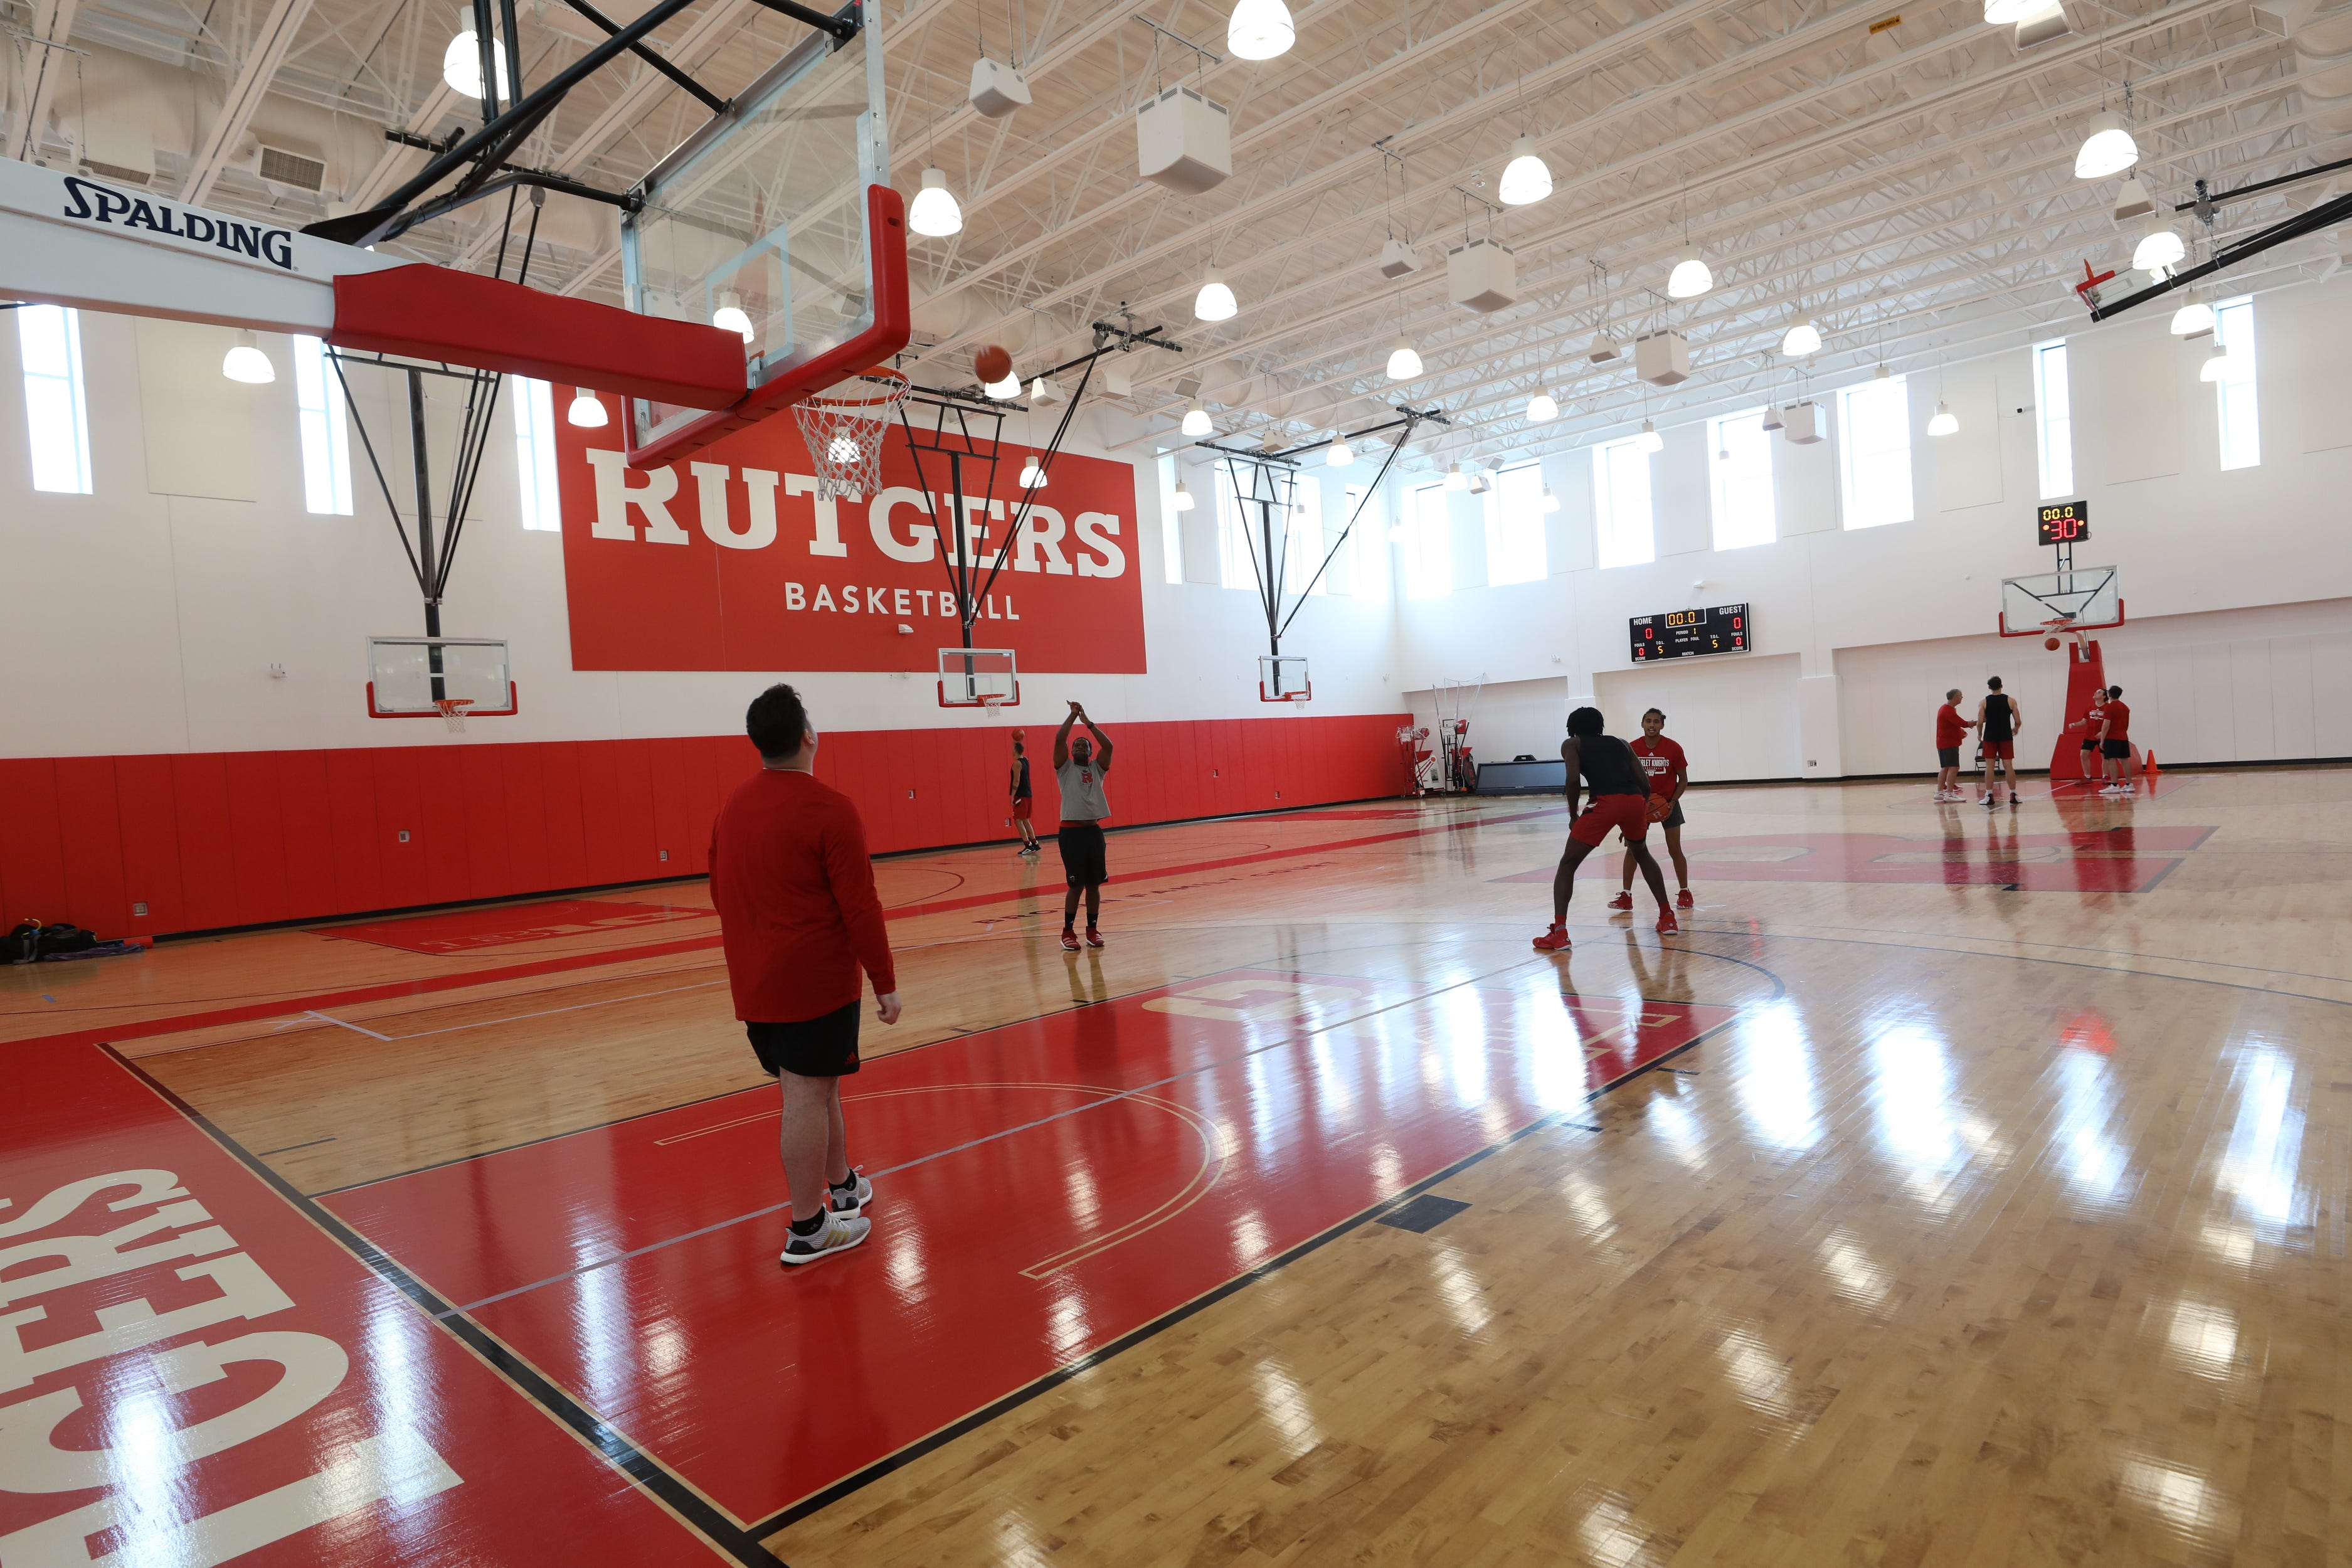 The men's basketball practice gym of the RWJBarnabas Health Athletic Performance Center, part of two new athletic facilities on the campus of Rutgers University.